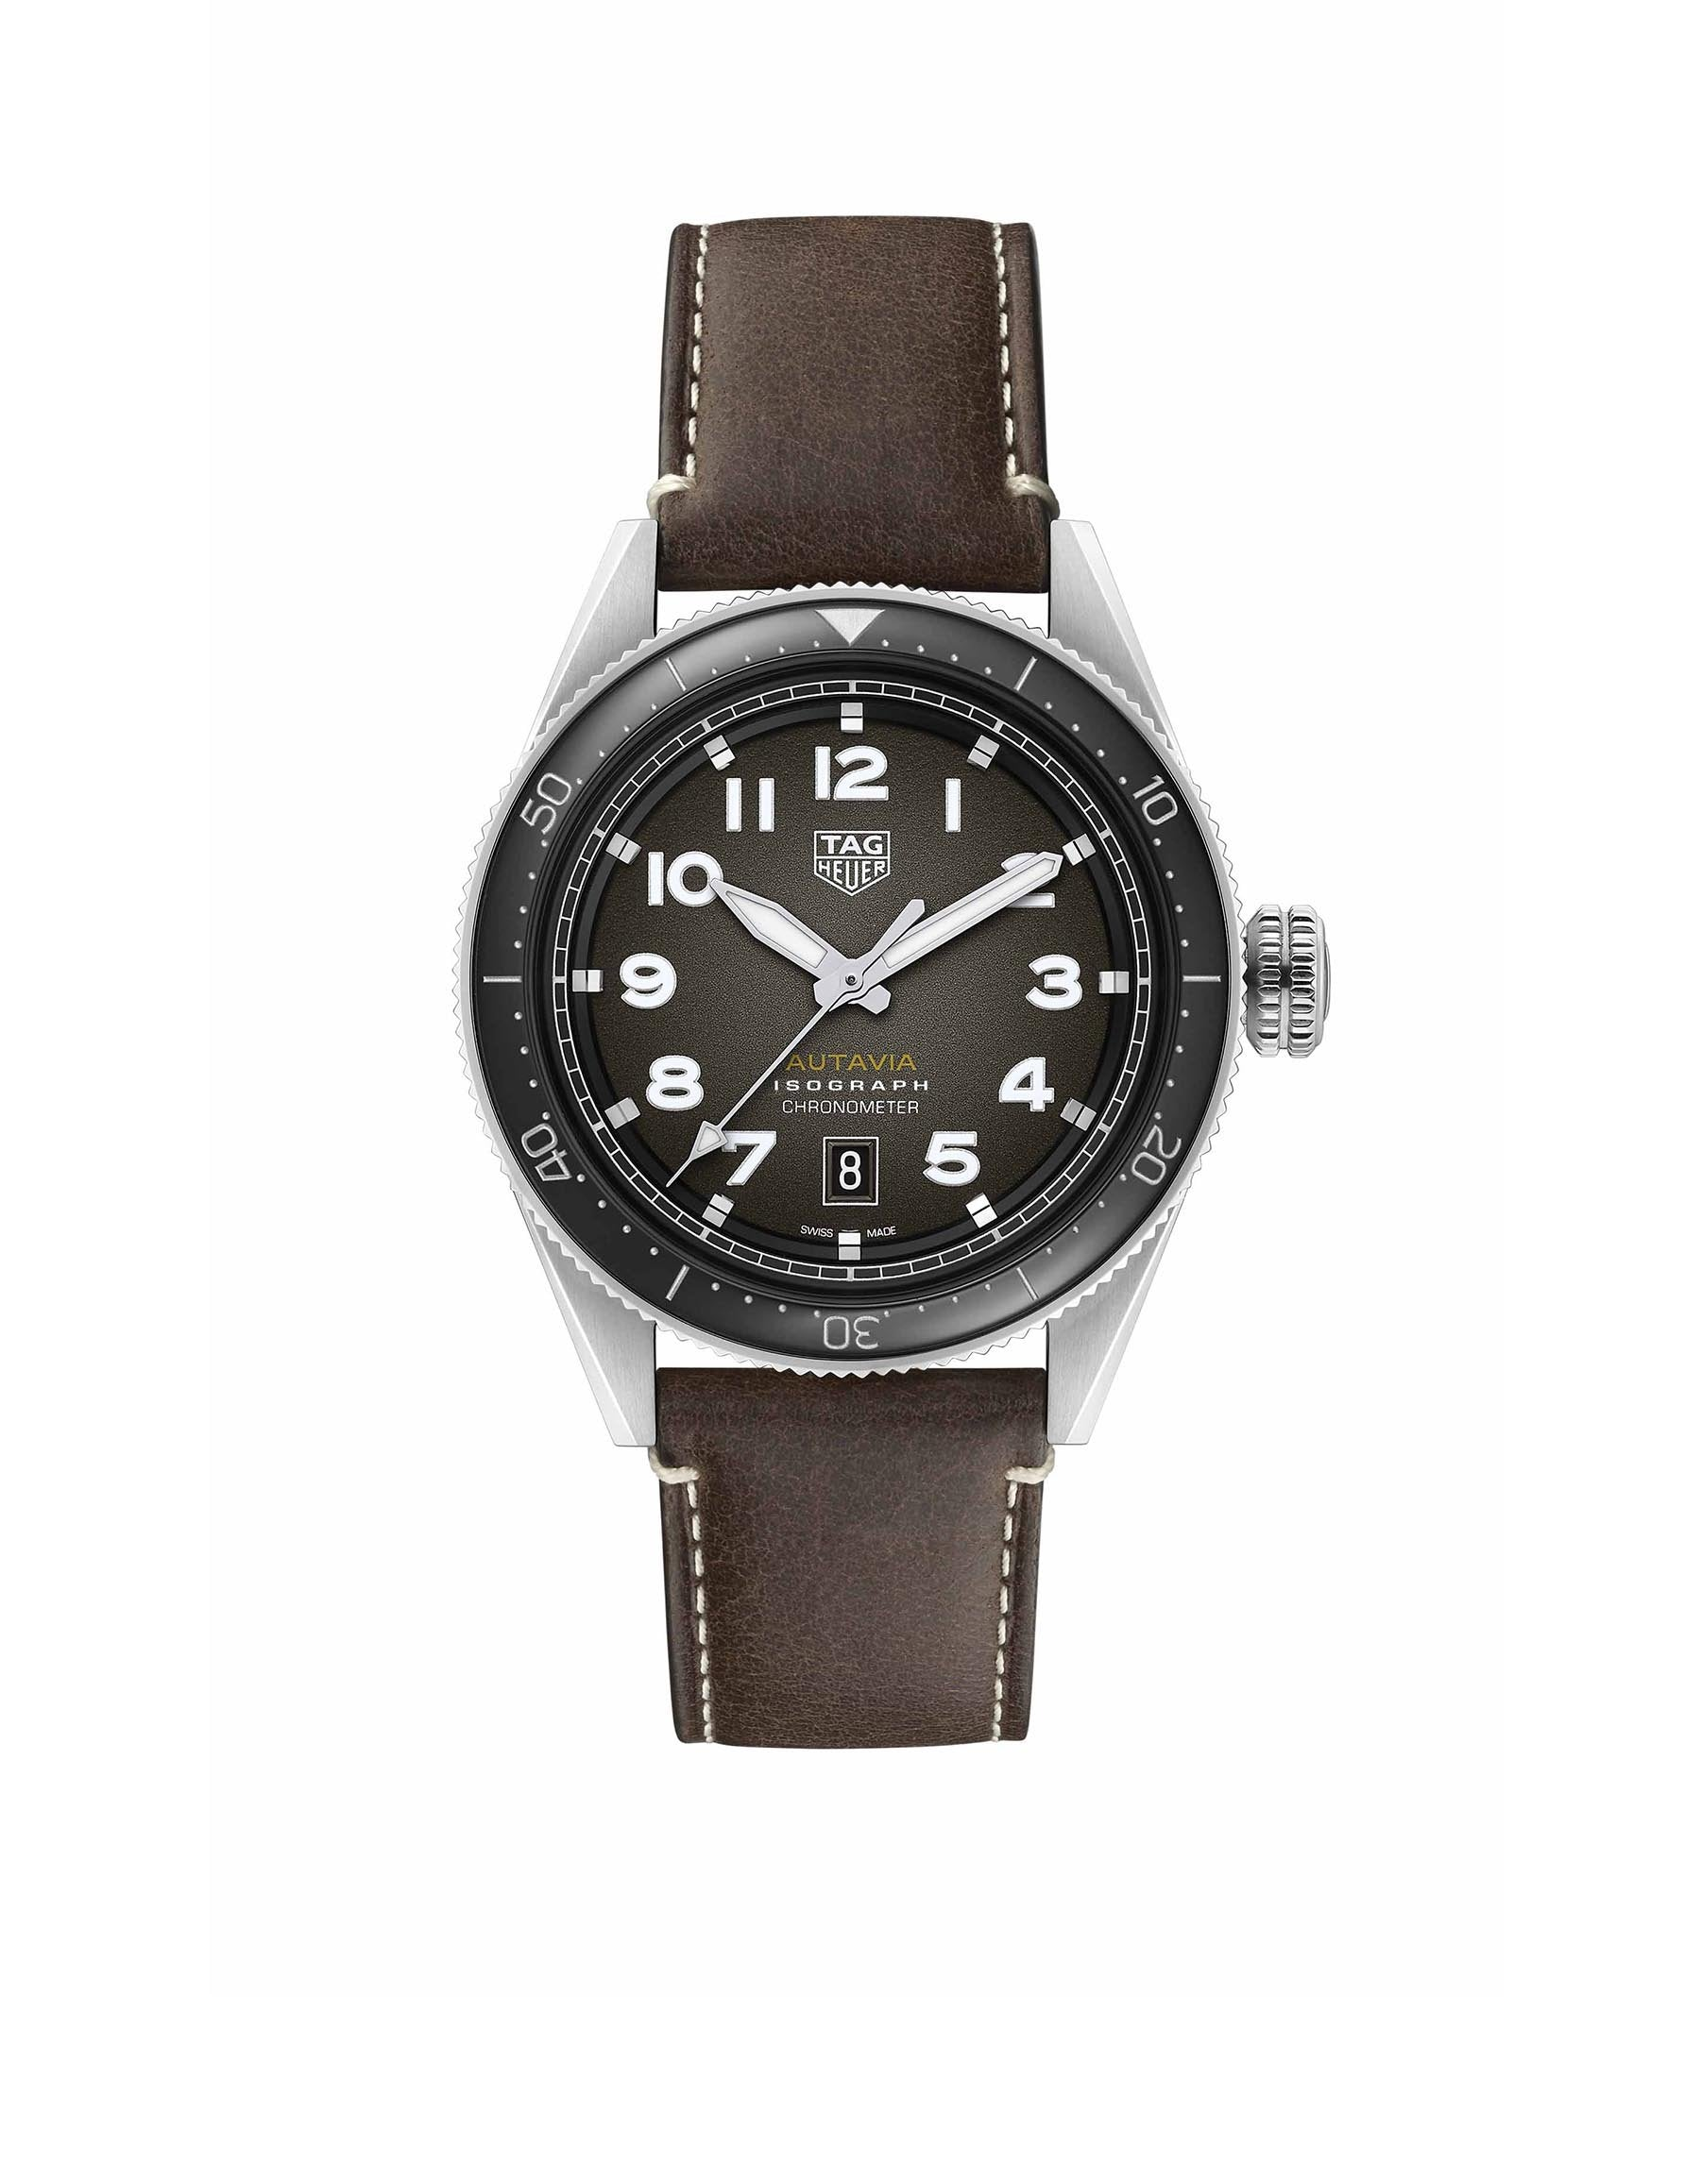 Heritage Autavia Calibre 5 COSC Watch